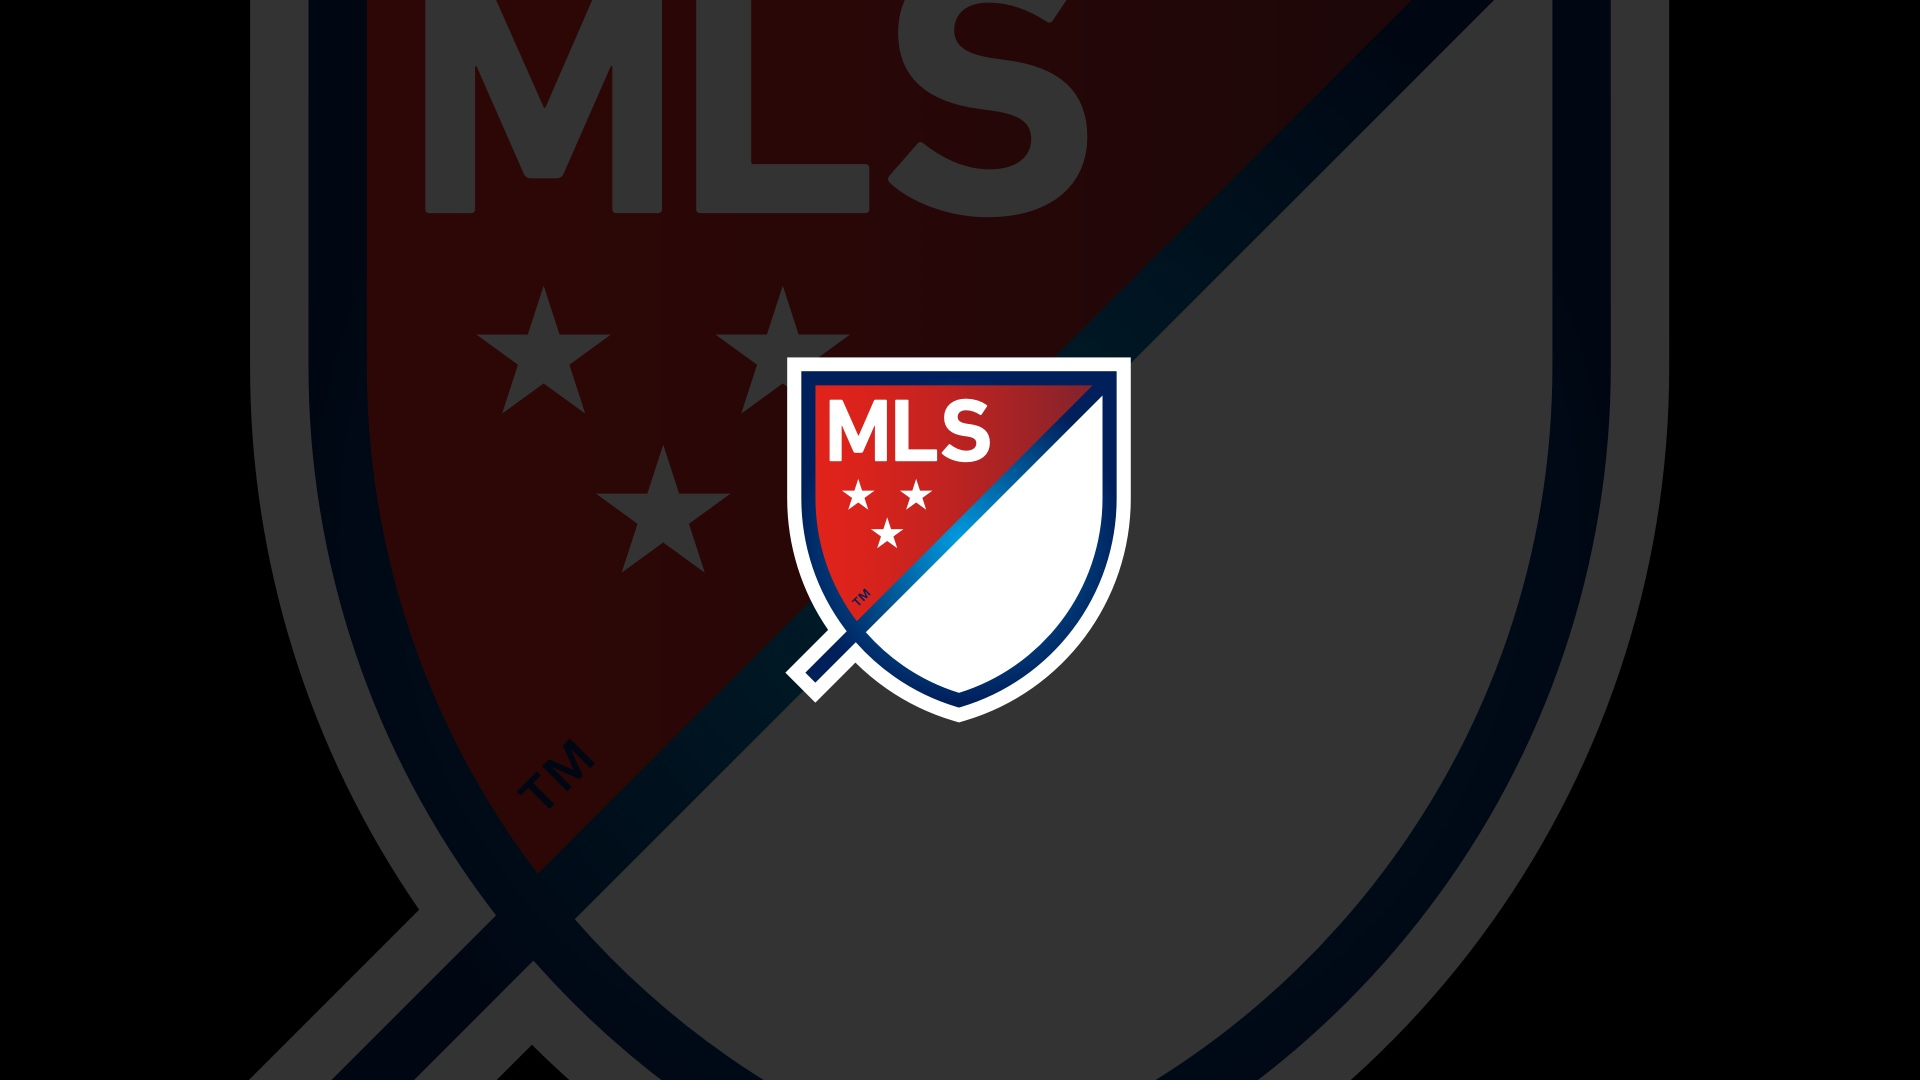 MLS 2021: la Major League Soccer se juega en DAZN